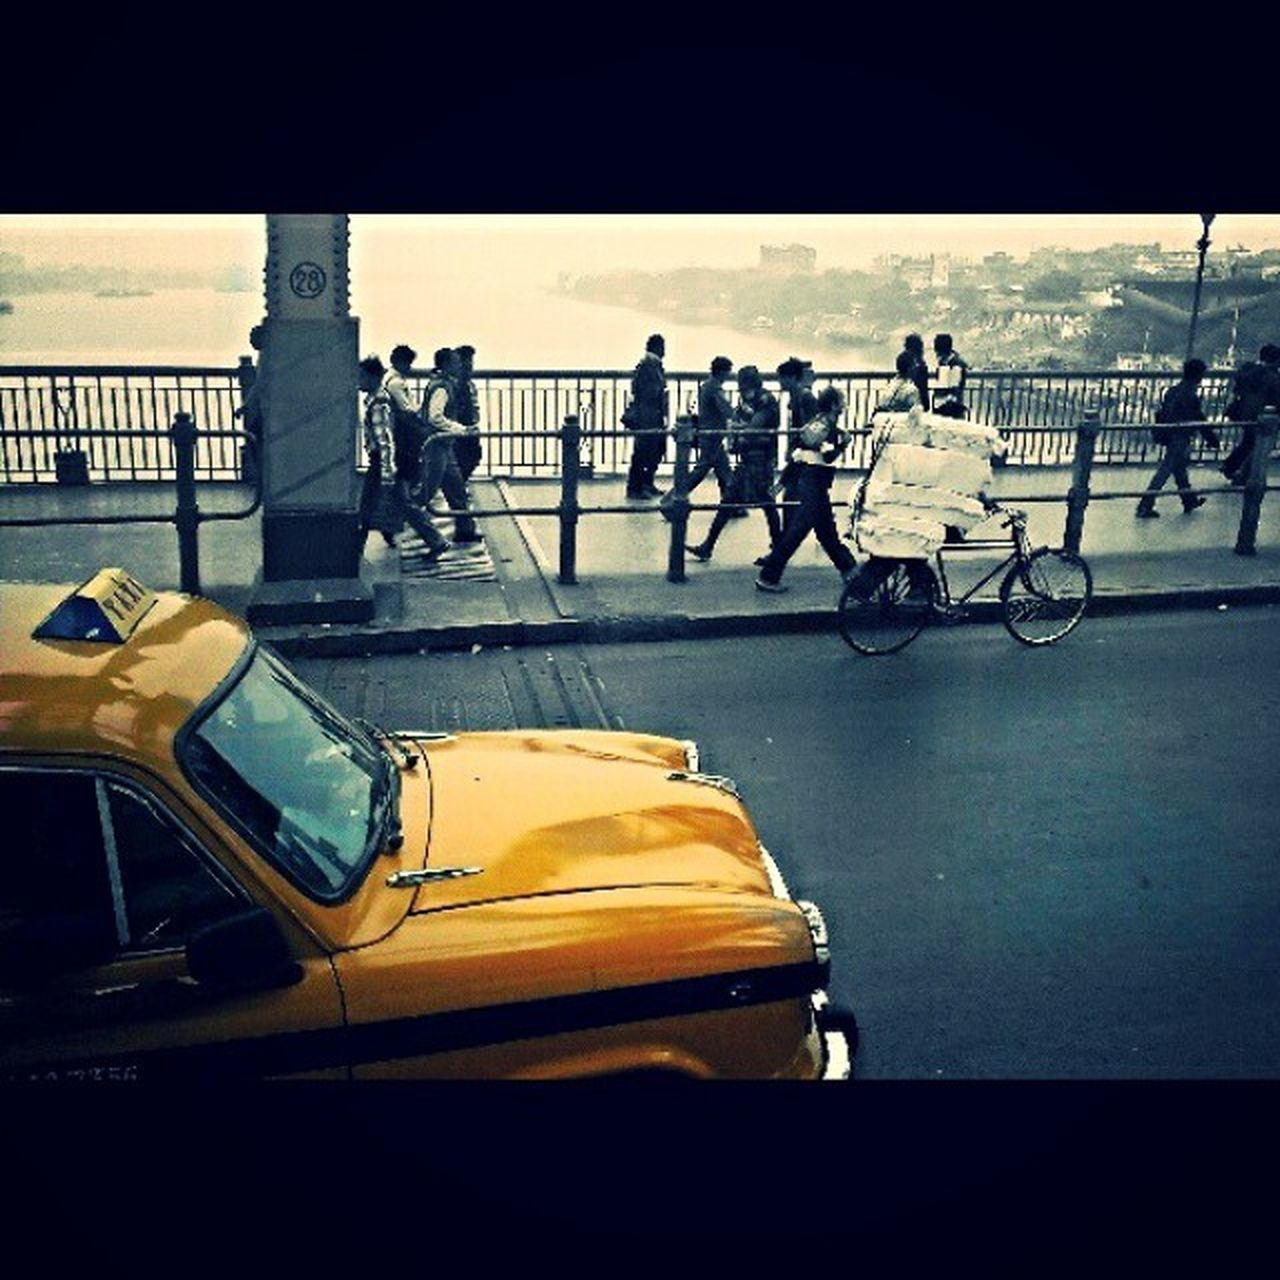 Kolkata Howrah Yellow Taxi CityOfSweets Picoftheday Pictureoftheday De3p Android Photography HTC